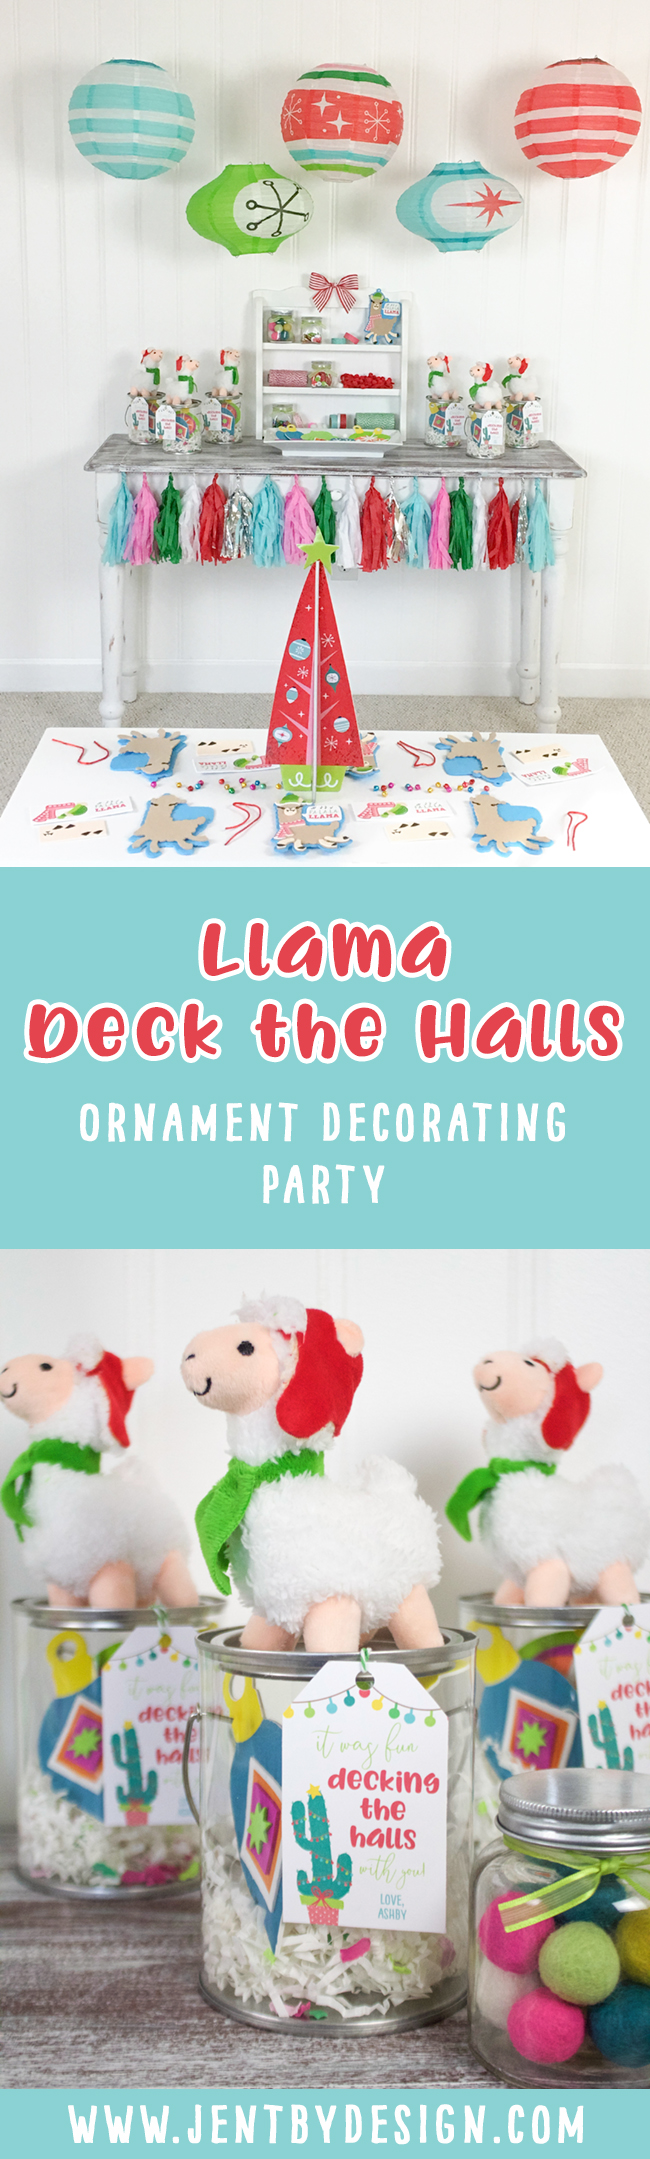 Kids Ornament Decorating Party - Llama Deck the Halls 1.jpg